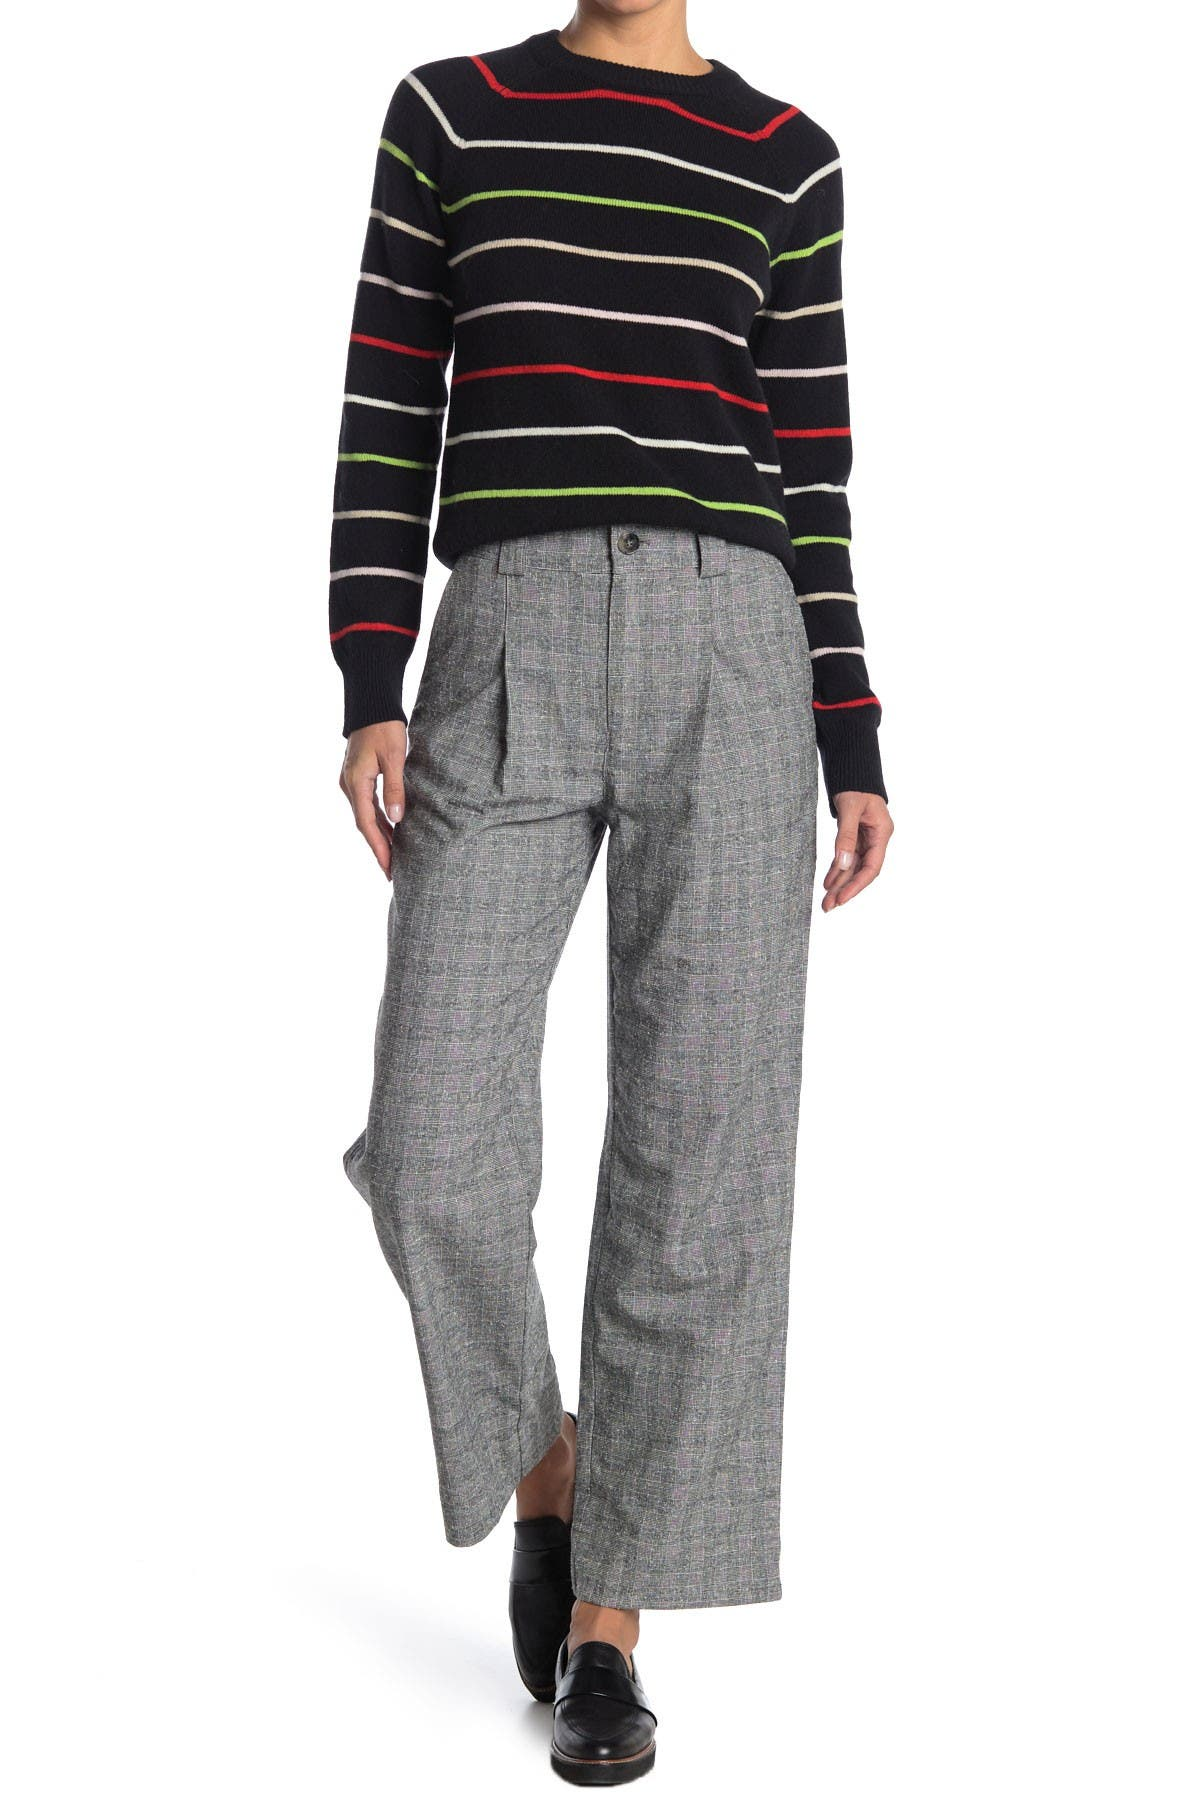 Image of GANNI High Rise Check Light Suiting Trousers